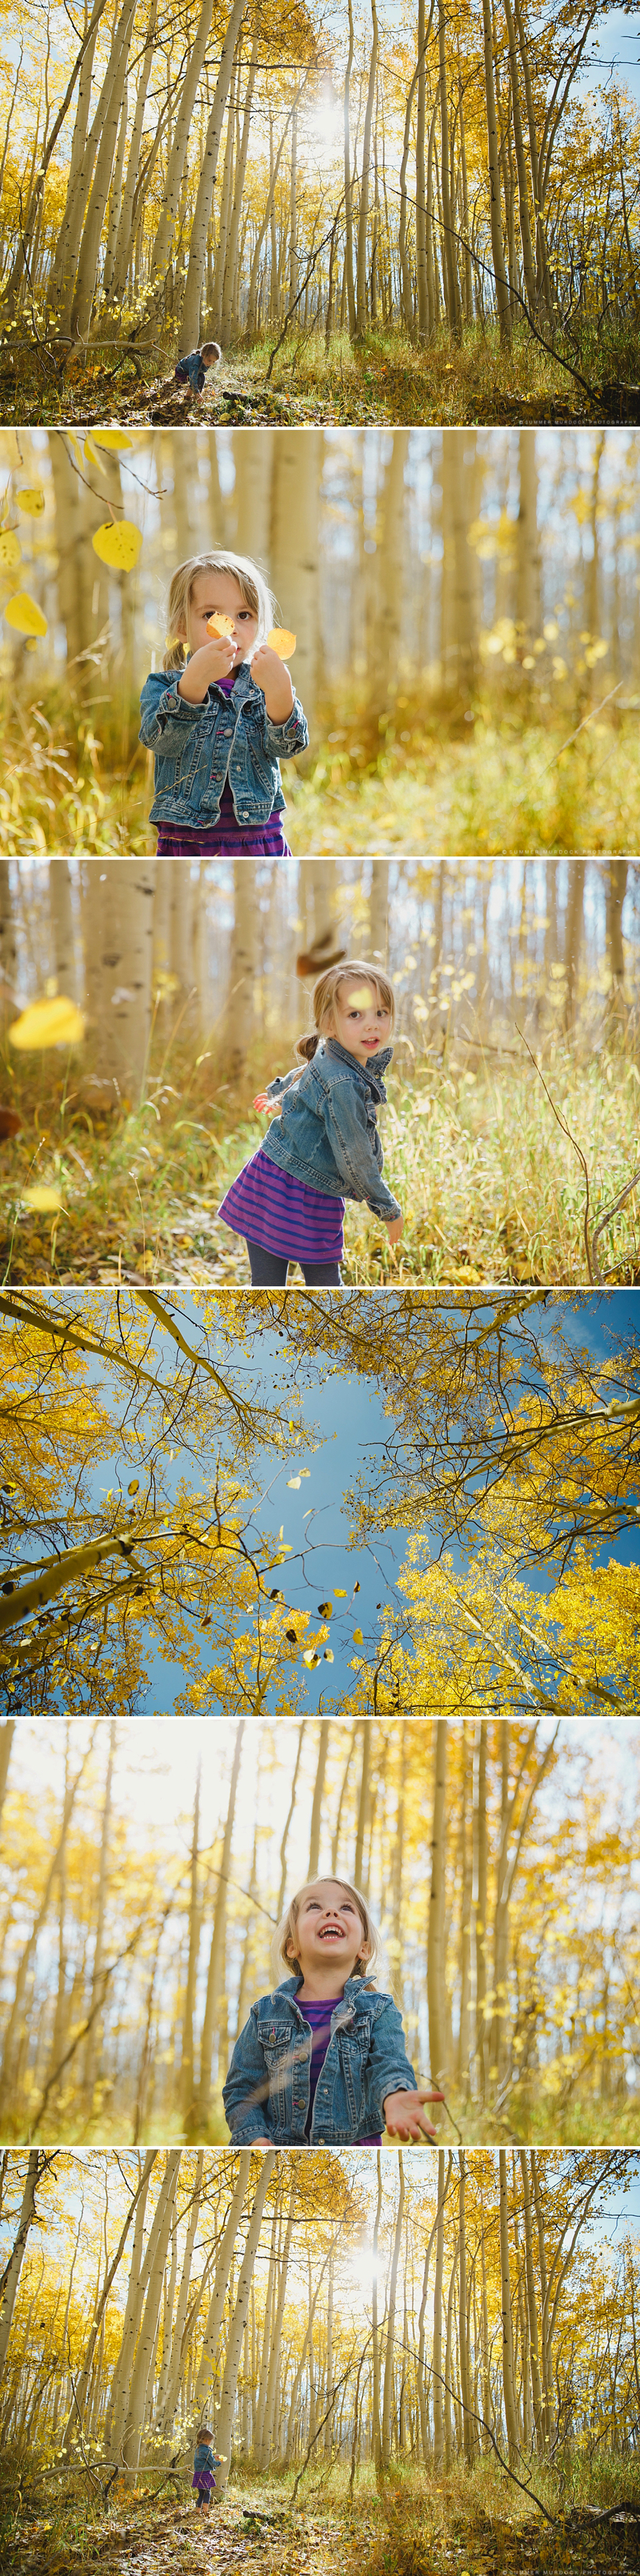 Summer Murdock Photography, Salt Lake City Utah Family Photographer, 5 minute project, aspen grove, fall